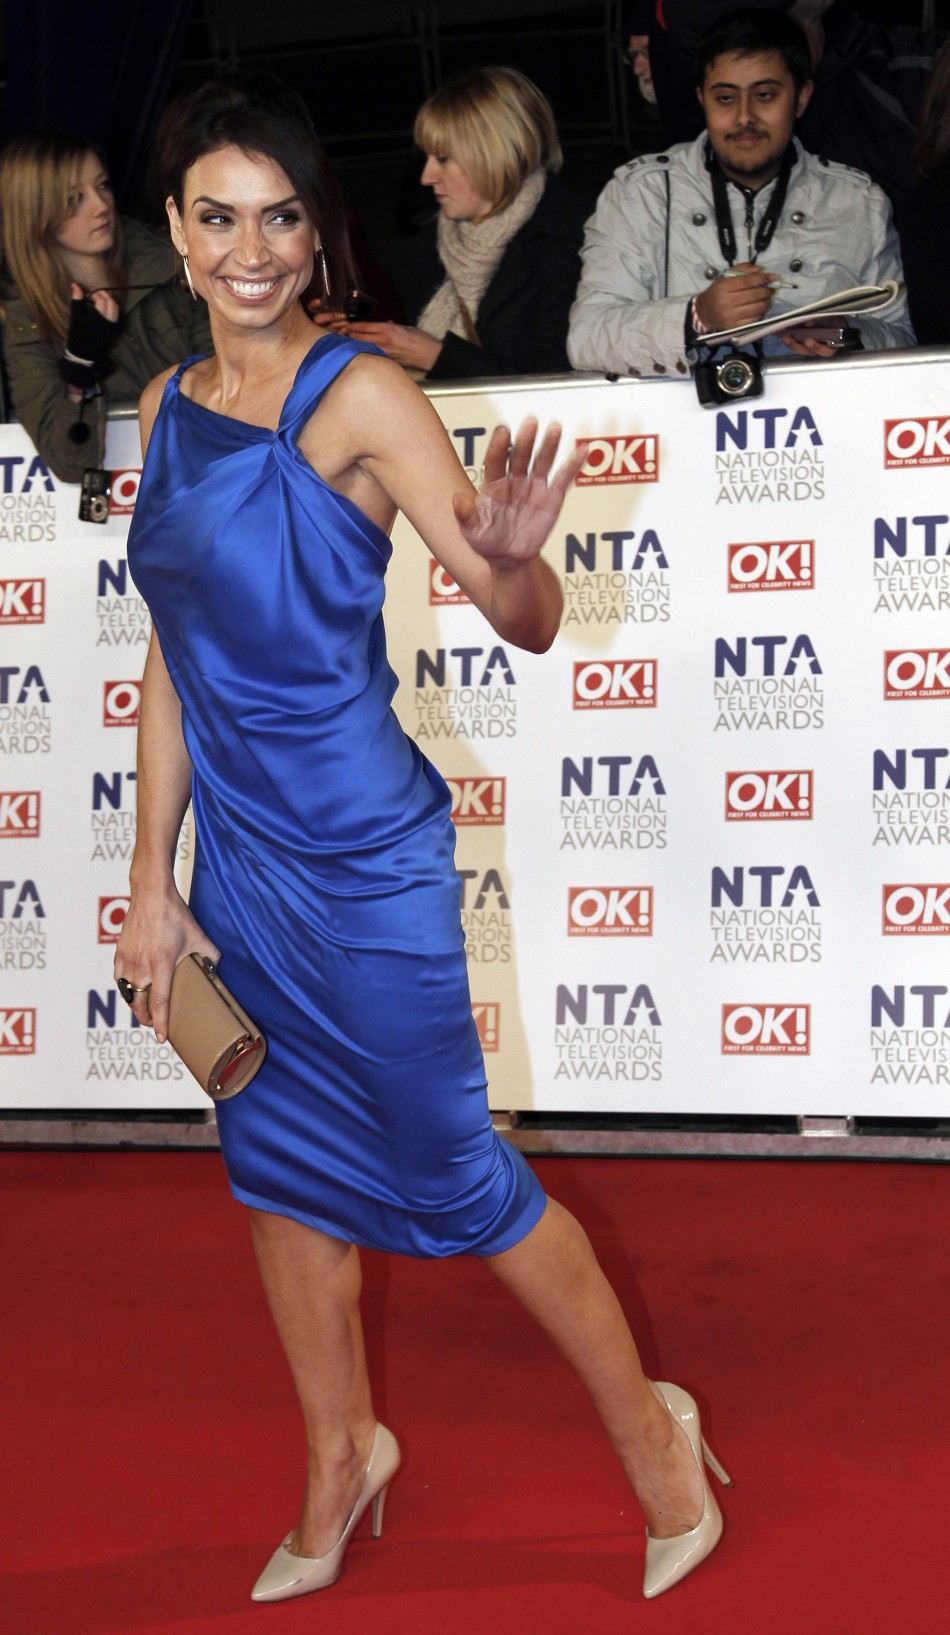 """Following her Daybreak debacle, Bleakley, who is engaged to Chelsea star Frank Lampard, will replace Holly Willoughby as the host of ITV """"Dancing on Ice"""" next year and host the show with Phillip Schofield."""